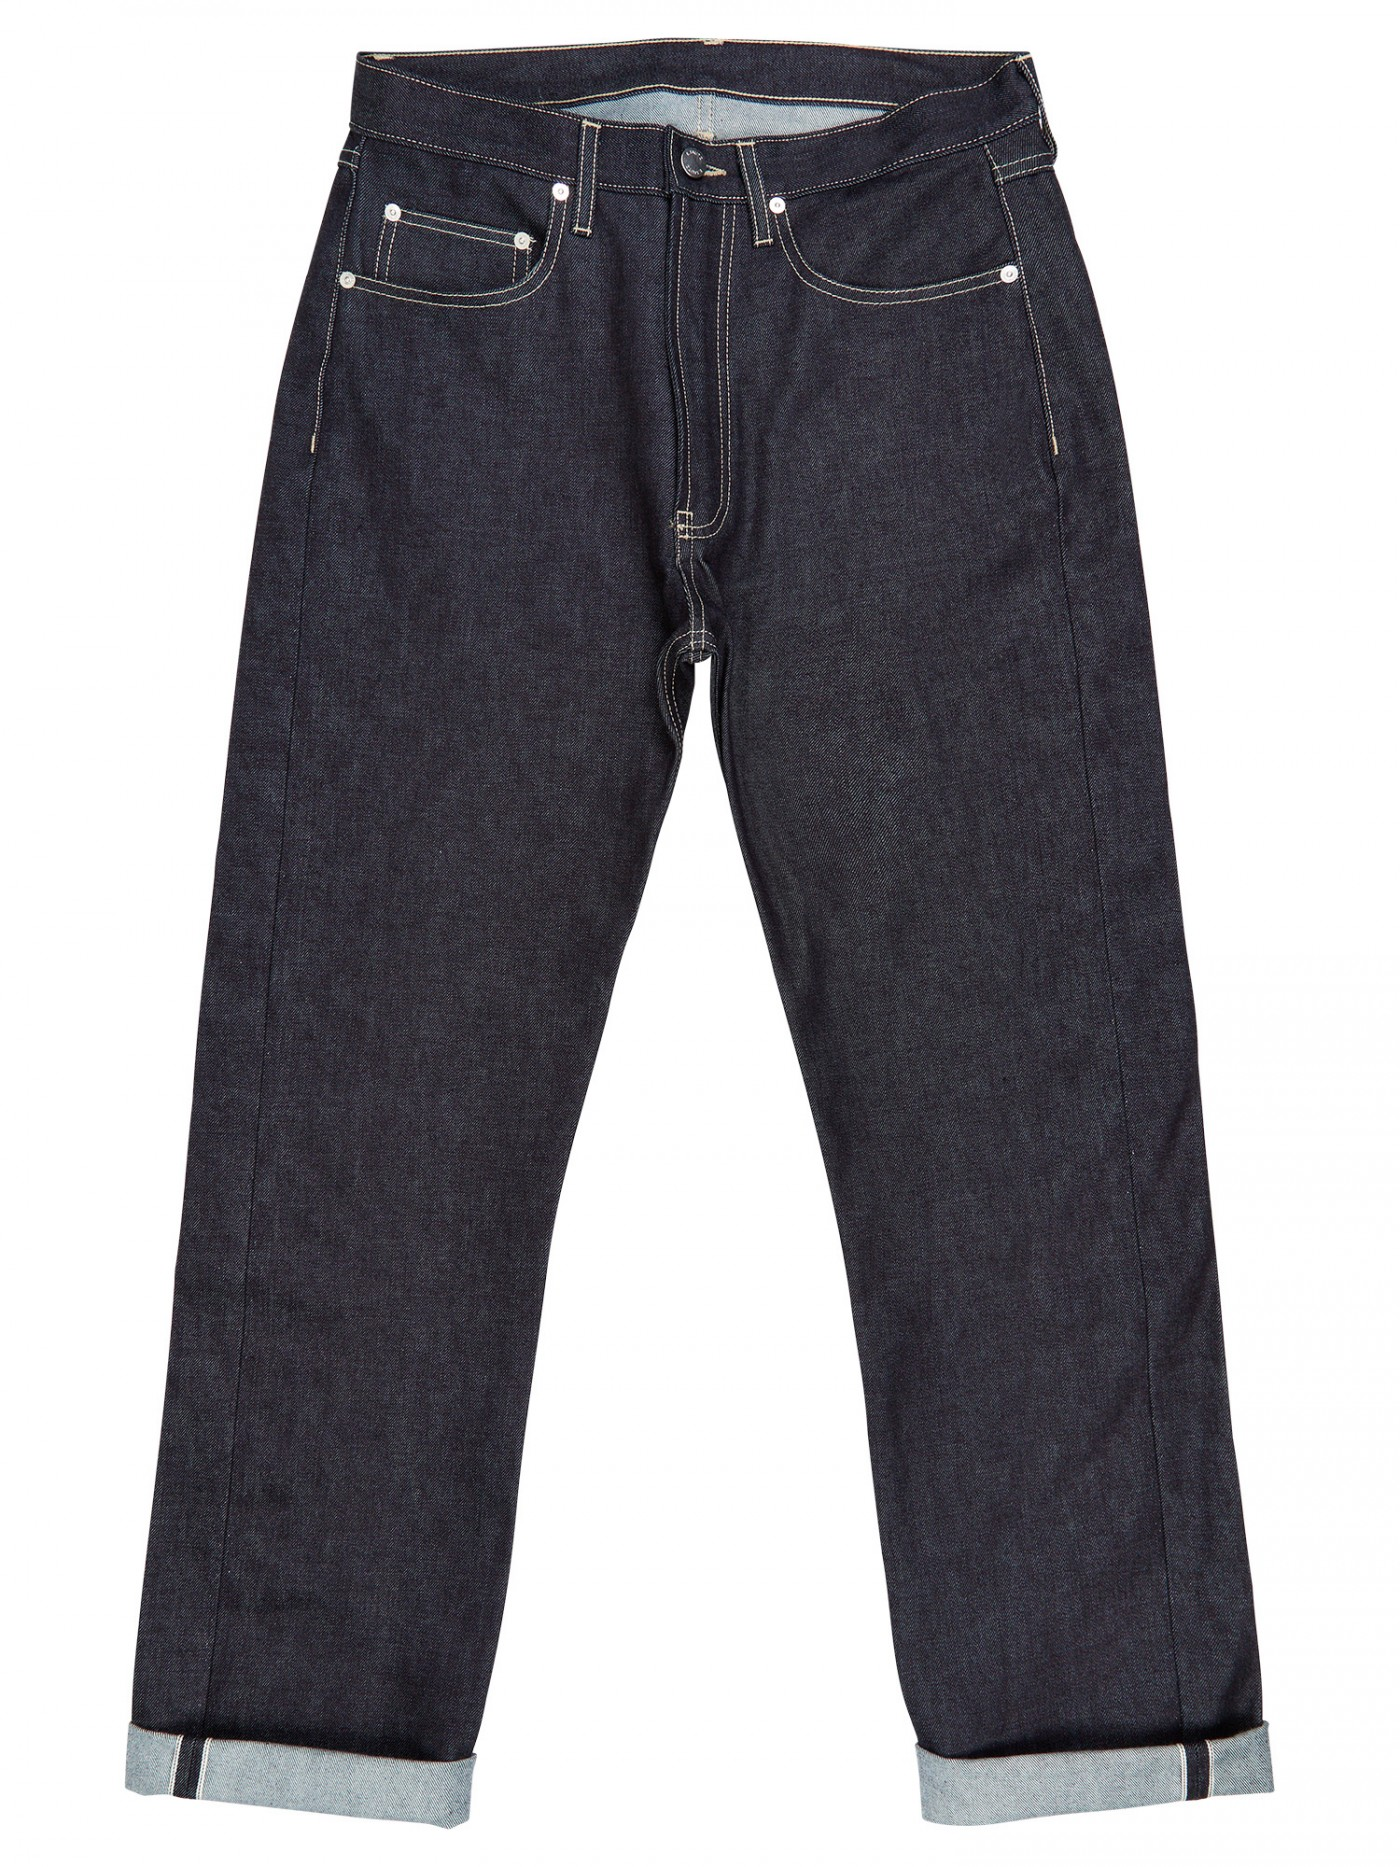 E. Tautz Raw Denim Jeans